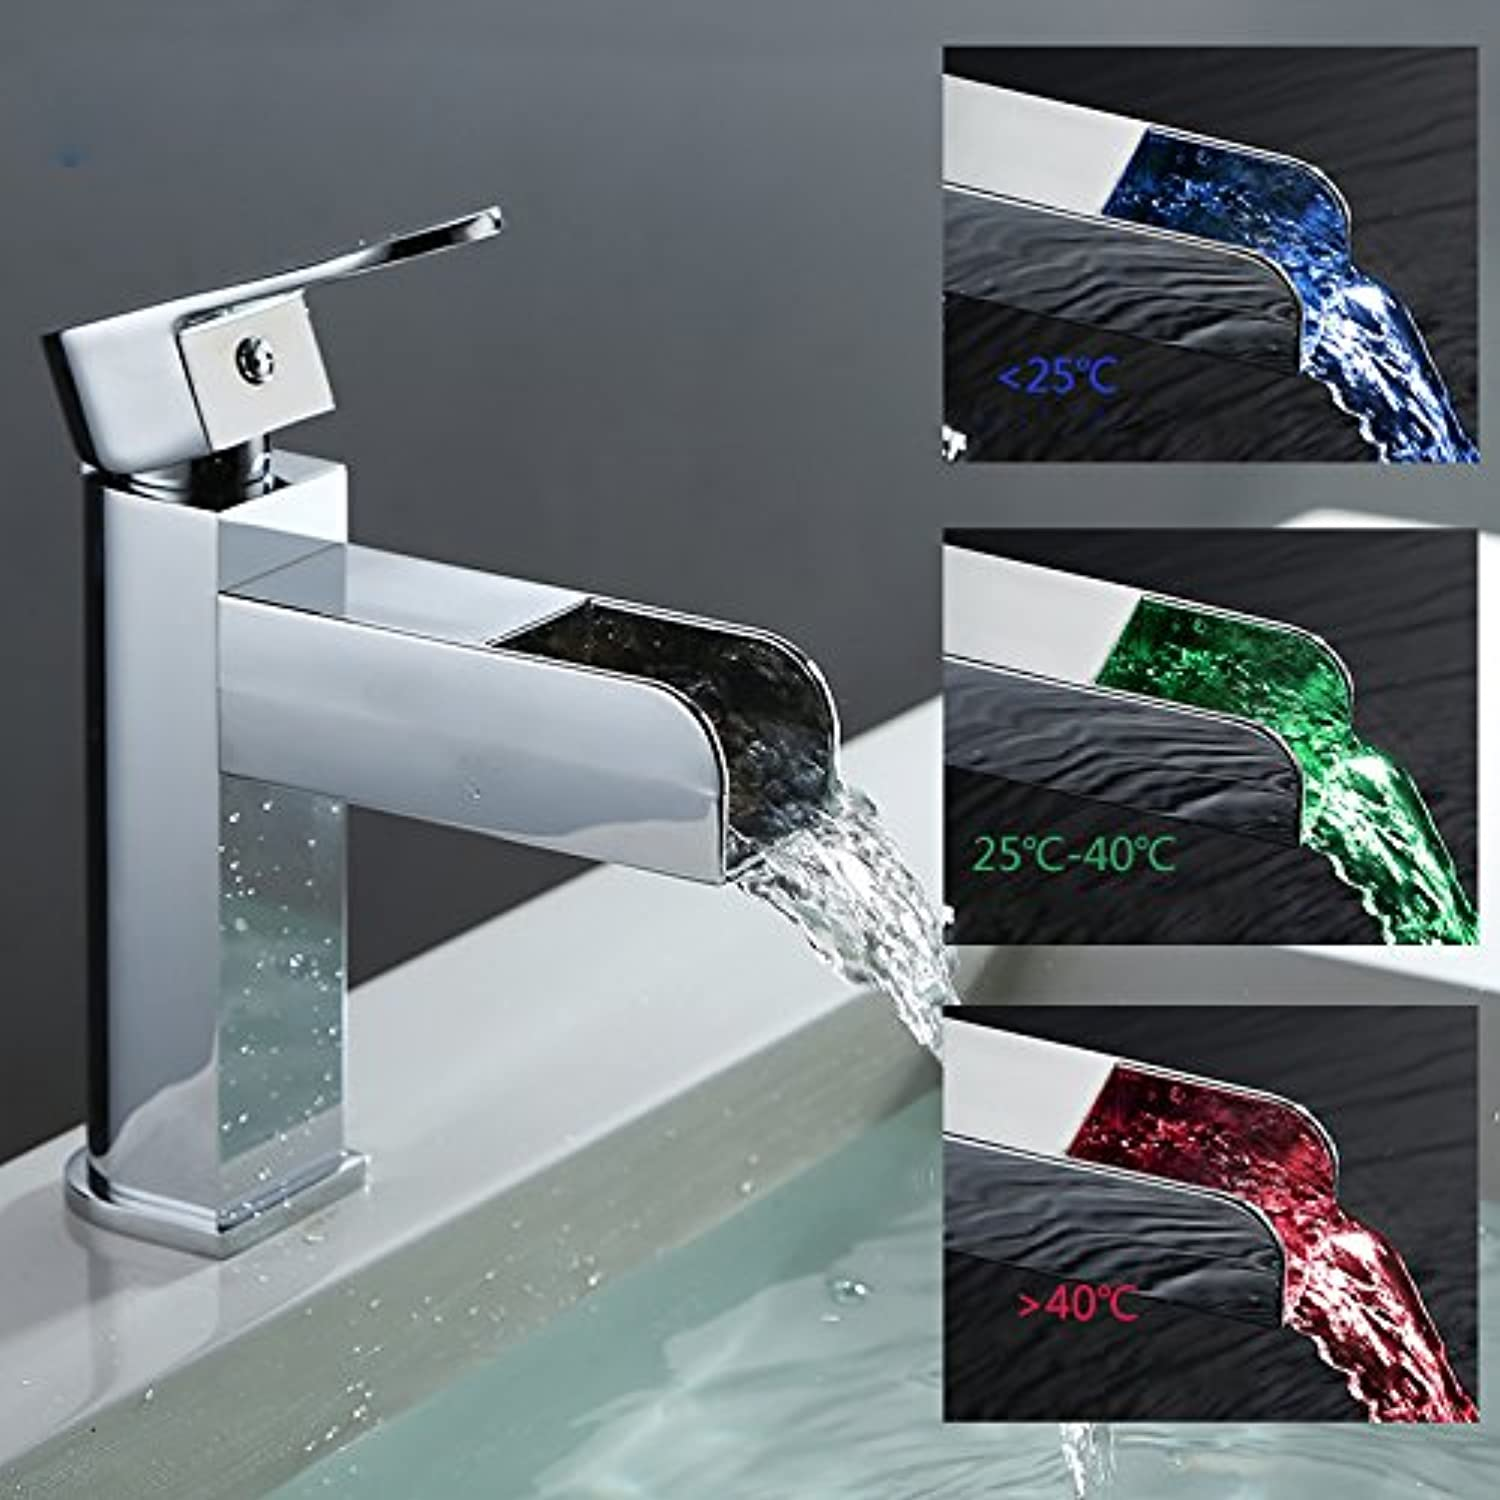 Global Brands Online GAPPO GLD3919 Temperature LED Light Single Handle Single Hole Hot and Cold Water Sink Faucet